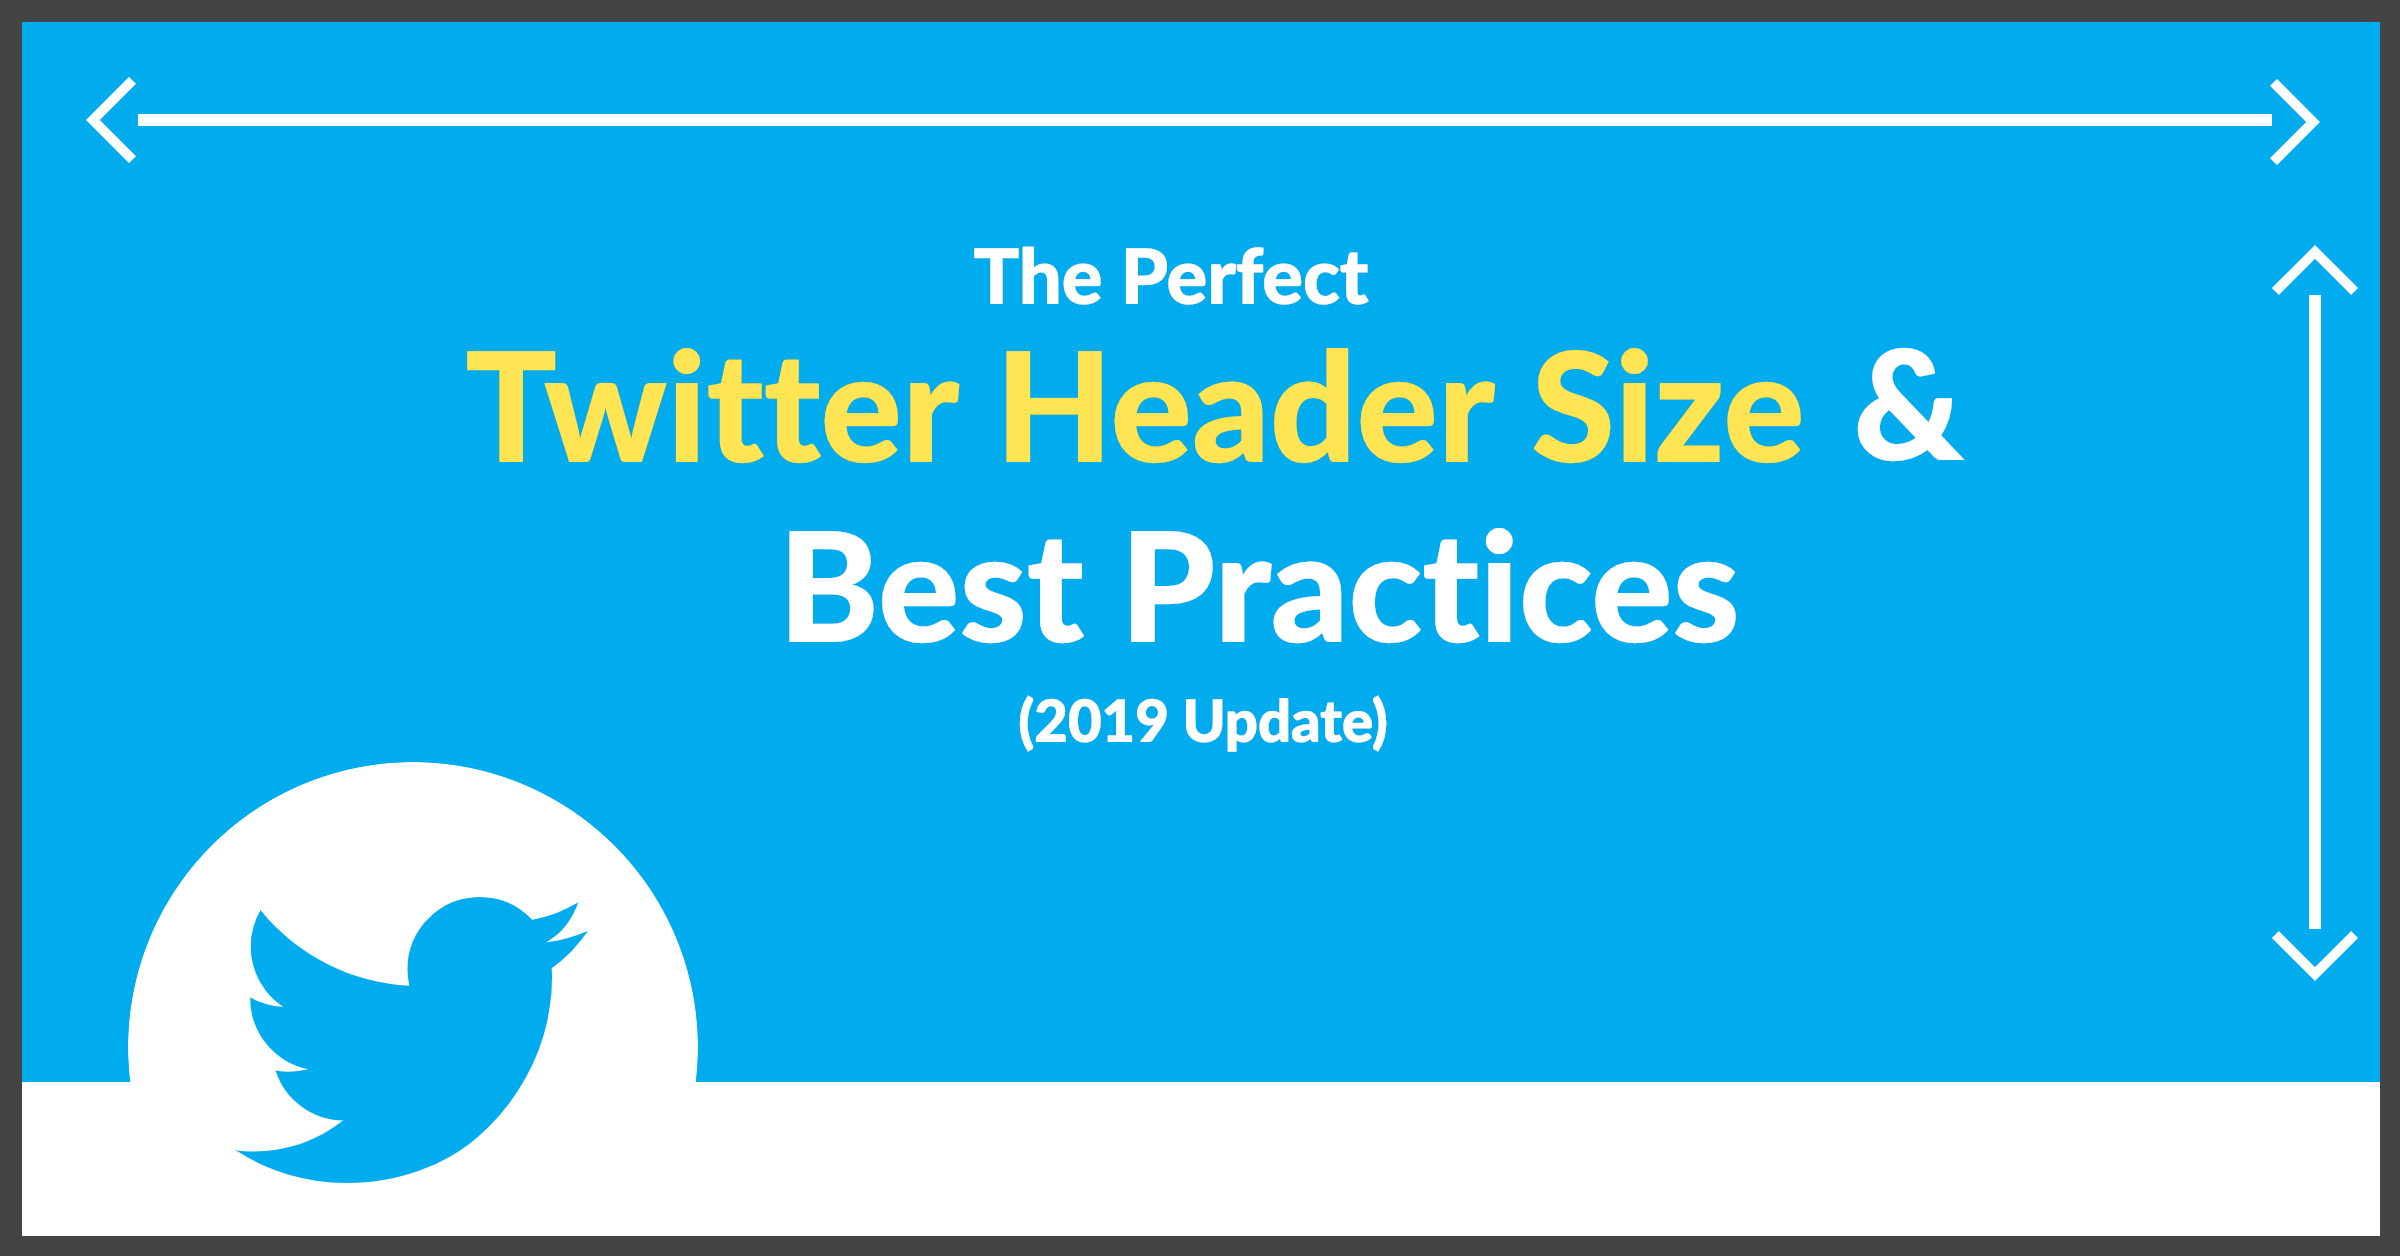 The Perfect Twitter Header Size & Best Practices (2019 Update)